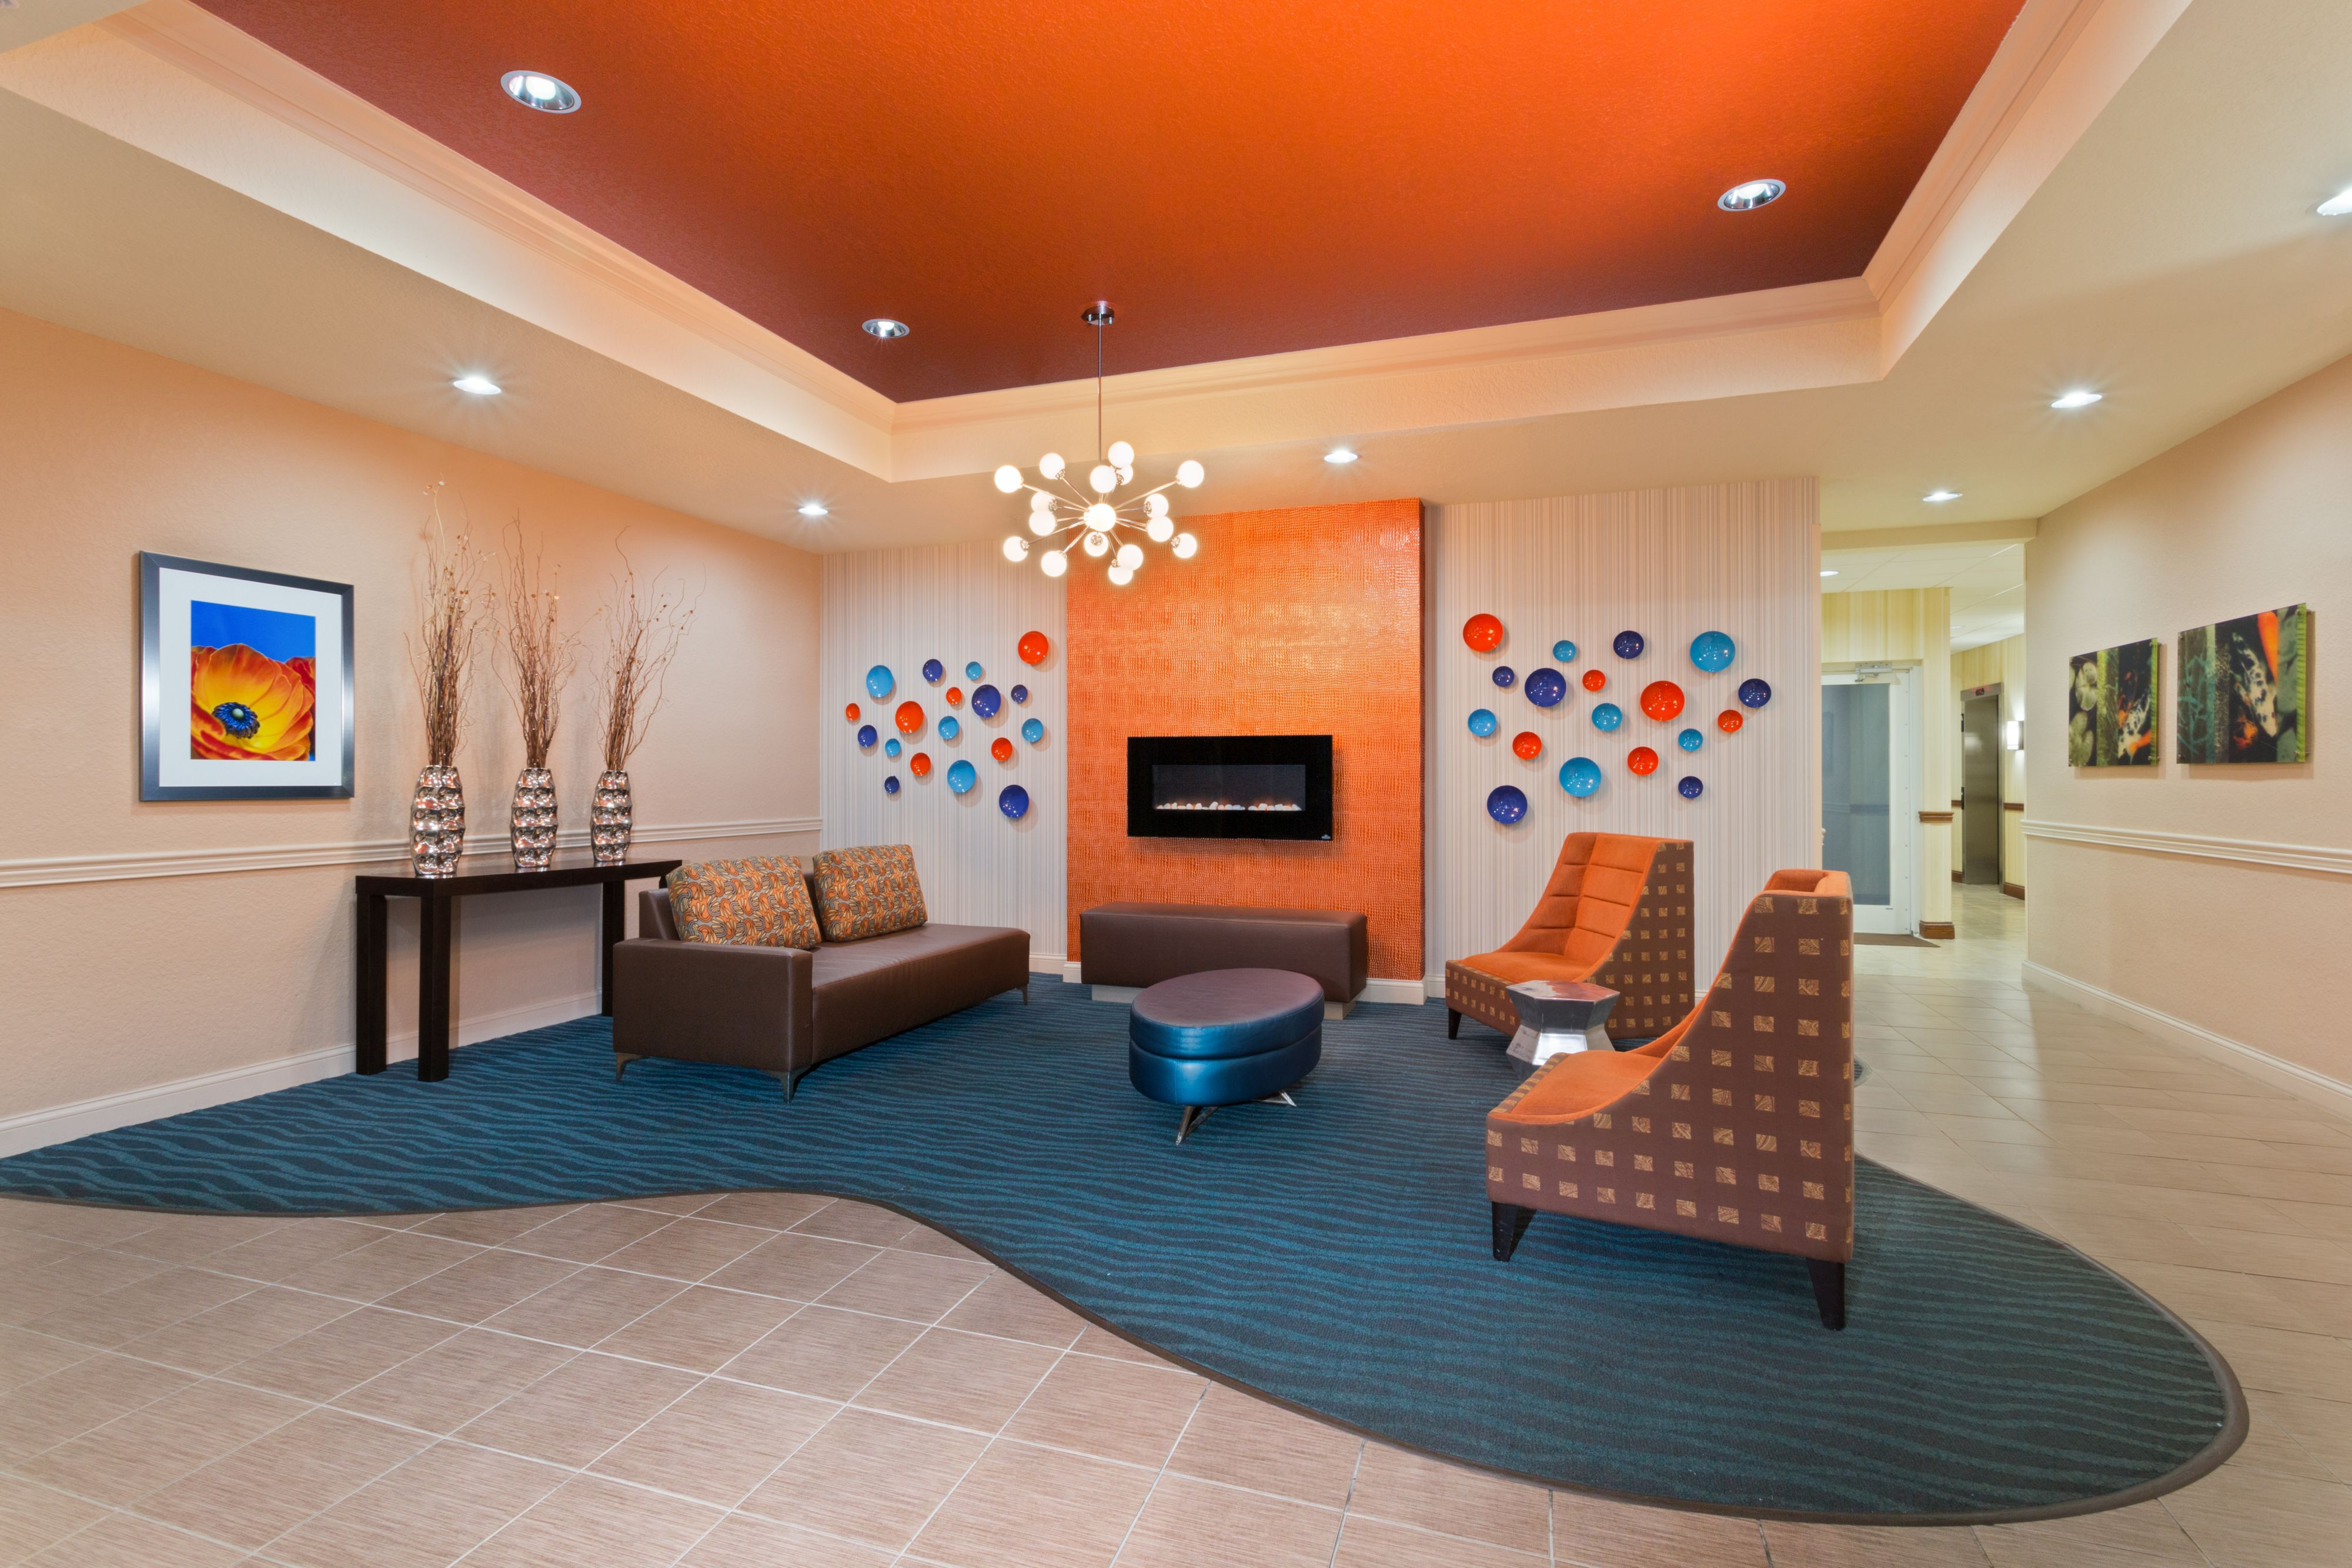 Hotels And Motels In Lakeland Florida